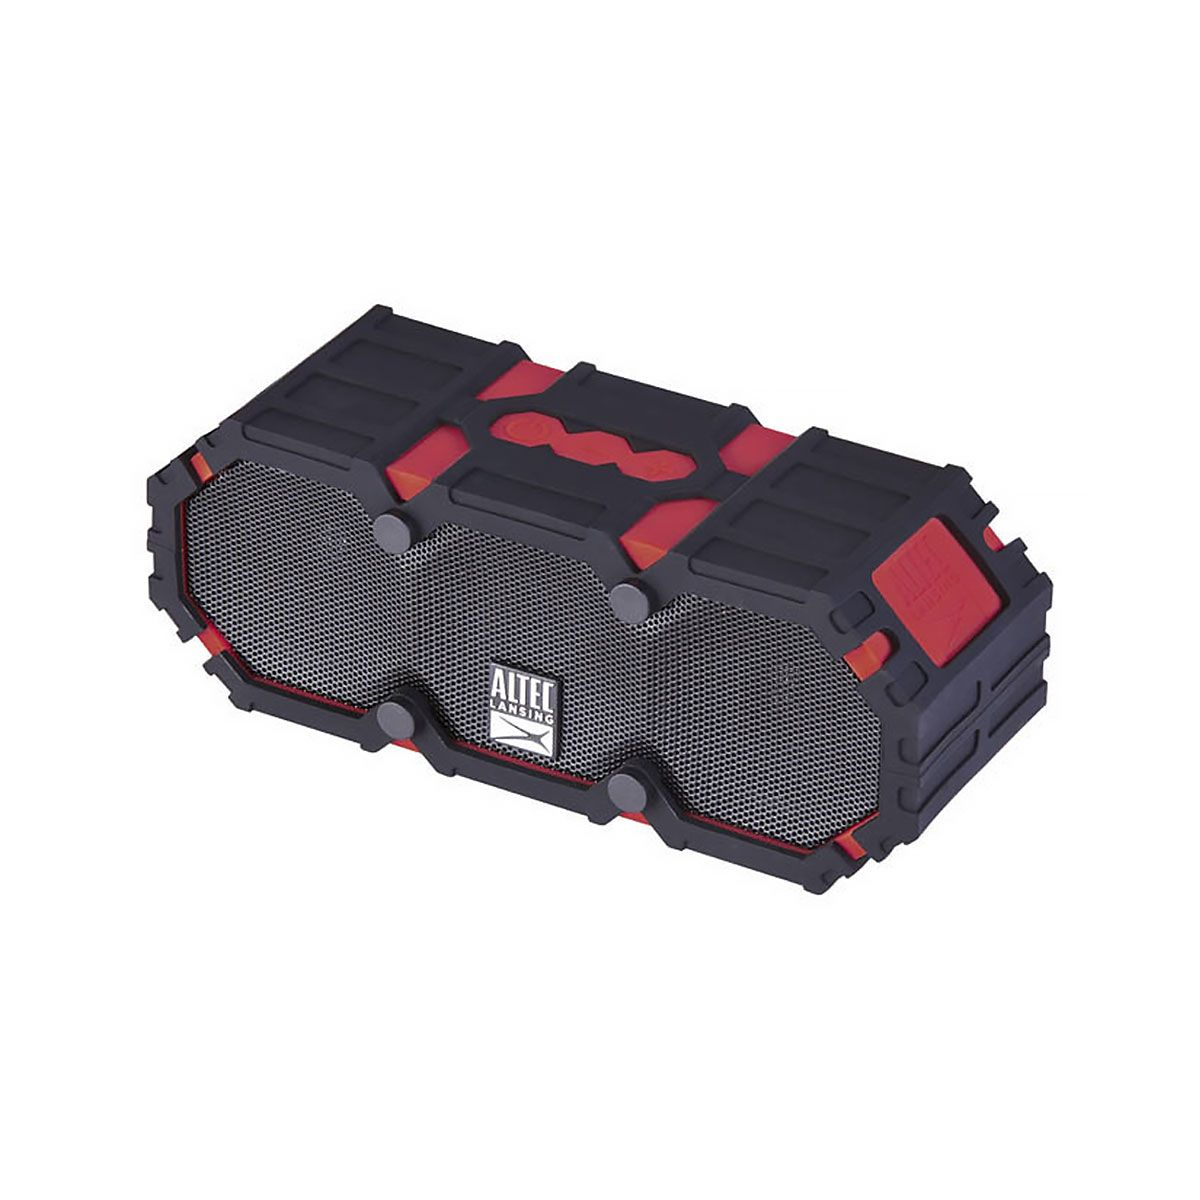 Altec Lansing – Mini Lifejacket 3